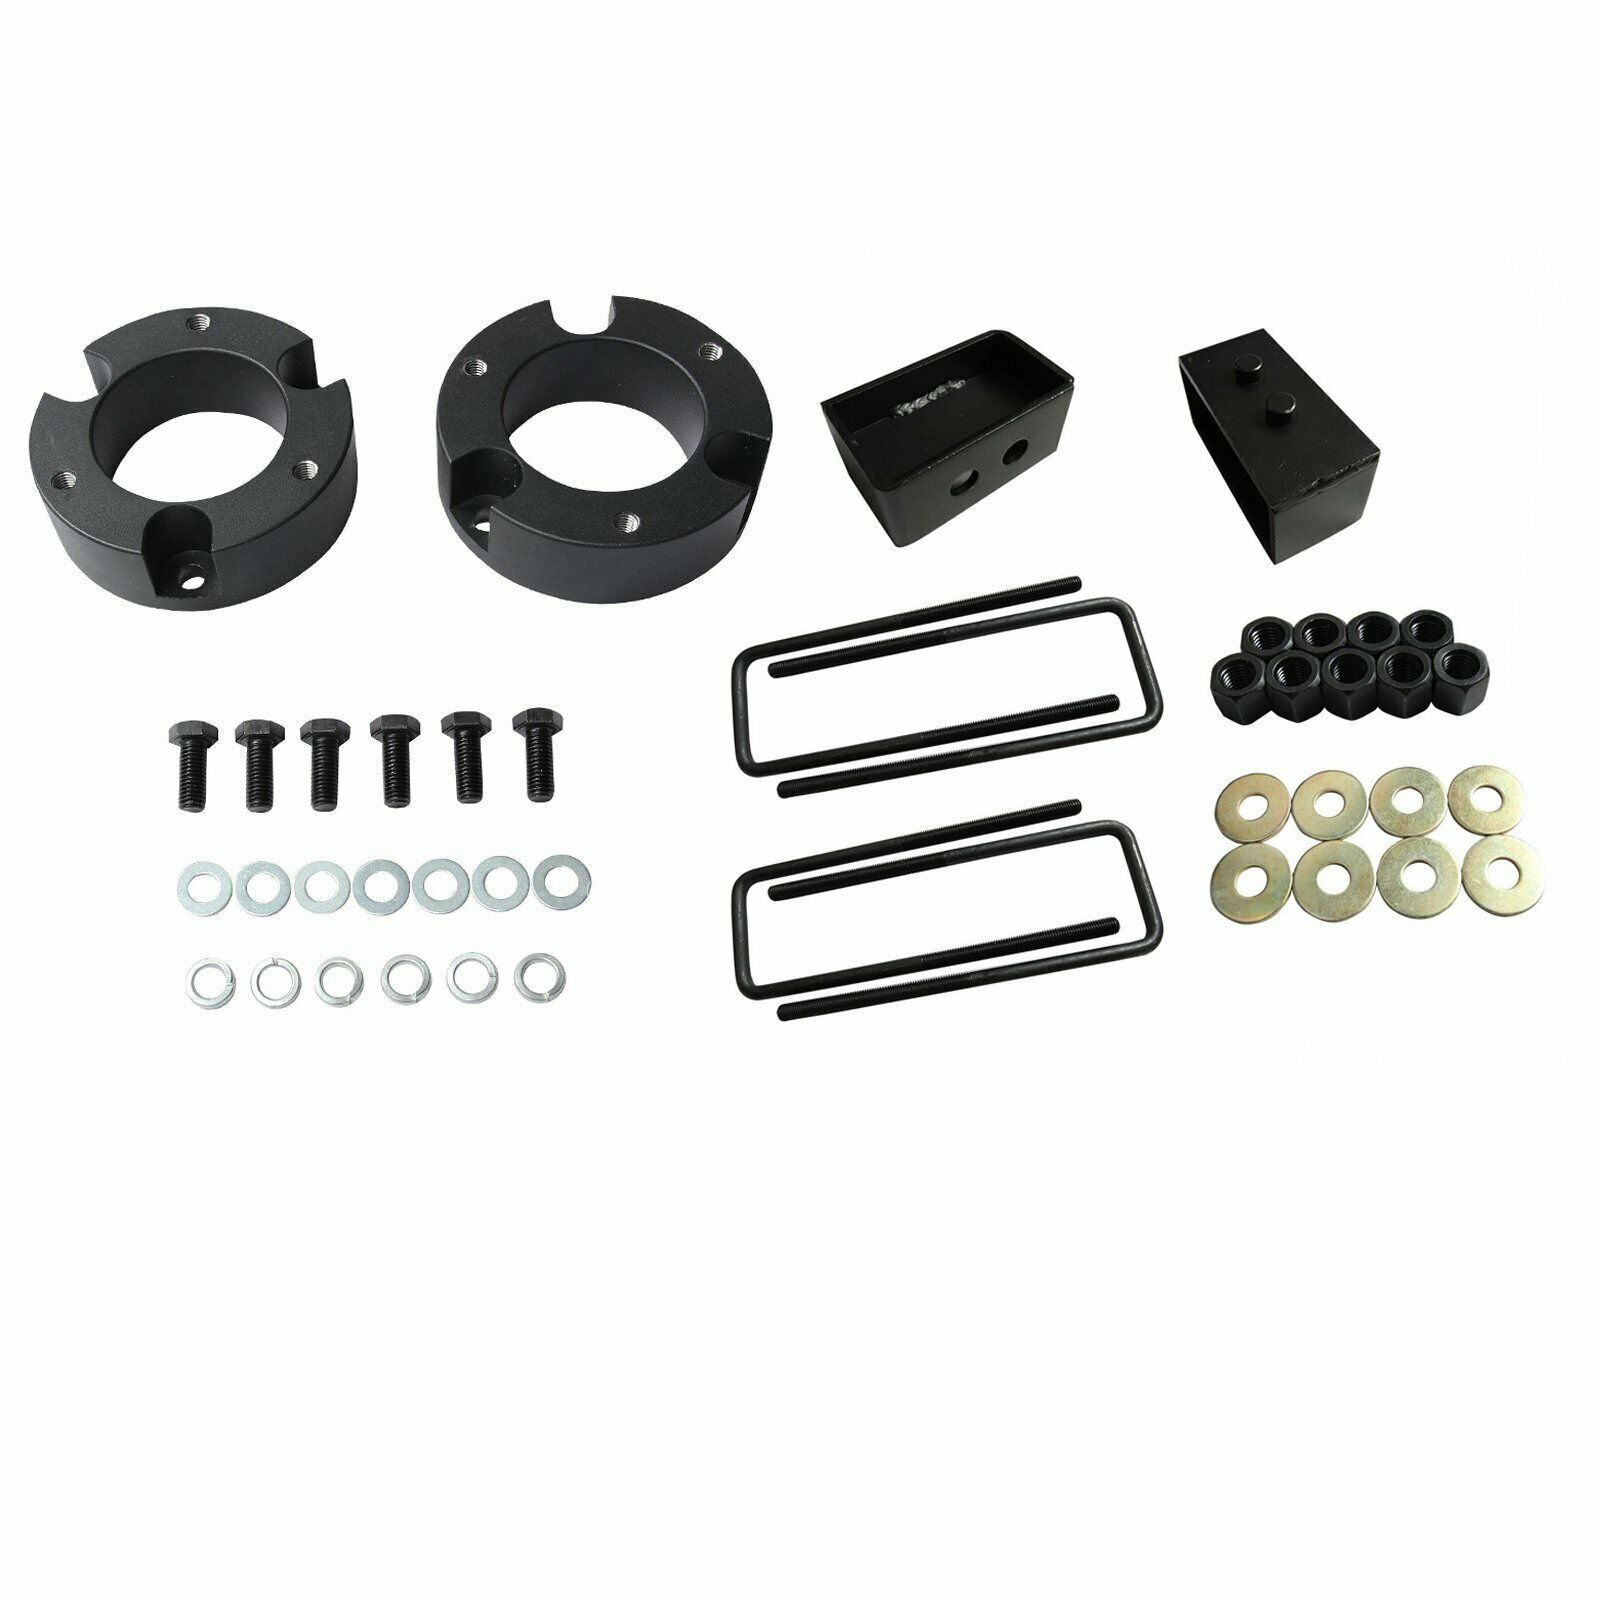 "For Toyota Tacoma 2"" Front 2"" Rear Leveling Lift Kit 4WD 2WD 2005-2018 Black - $69.44"